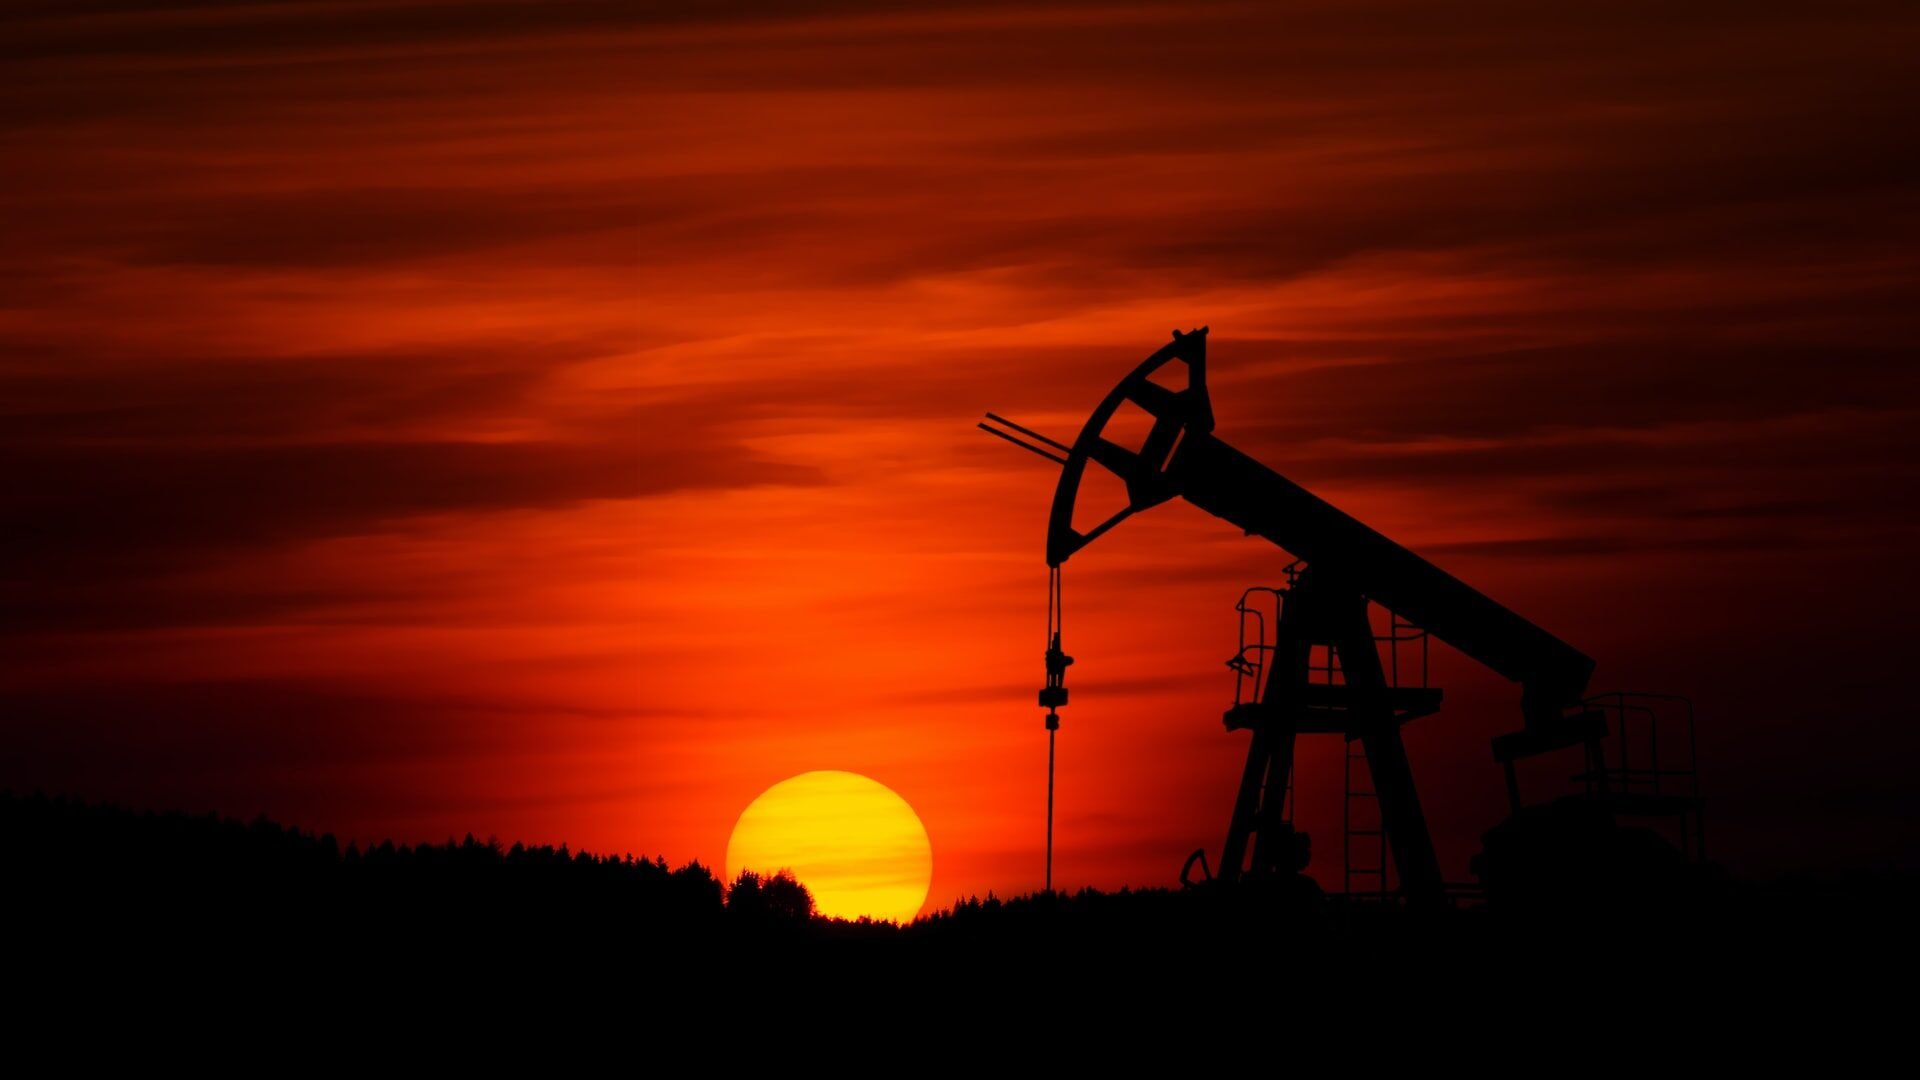 Geopolitical Issues Override Data That Normally Drive Oil Prices